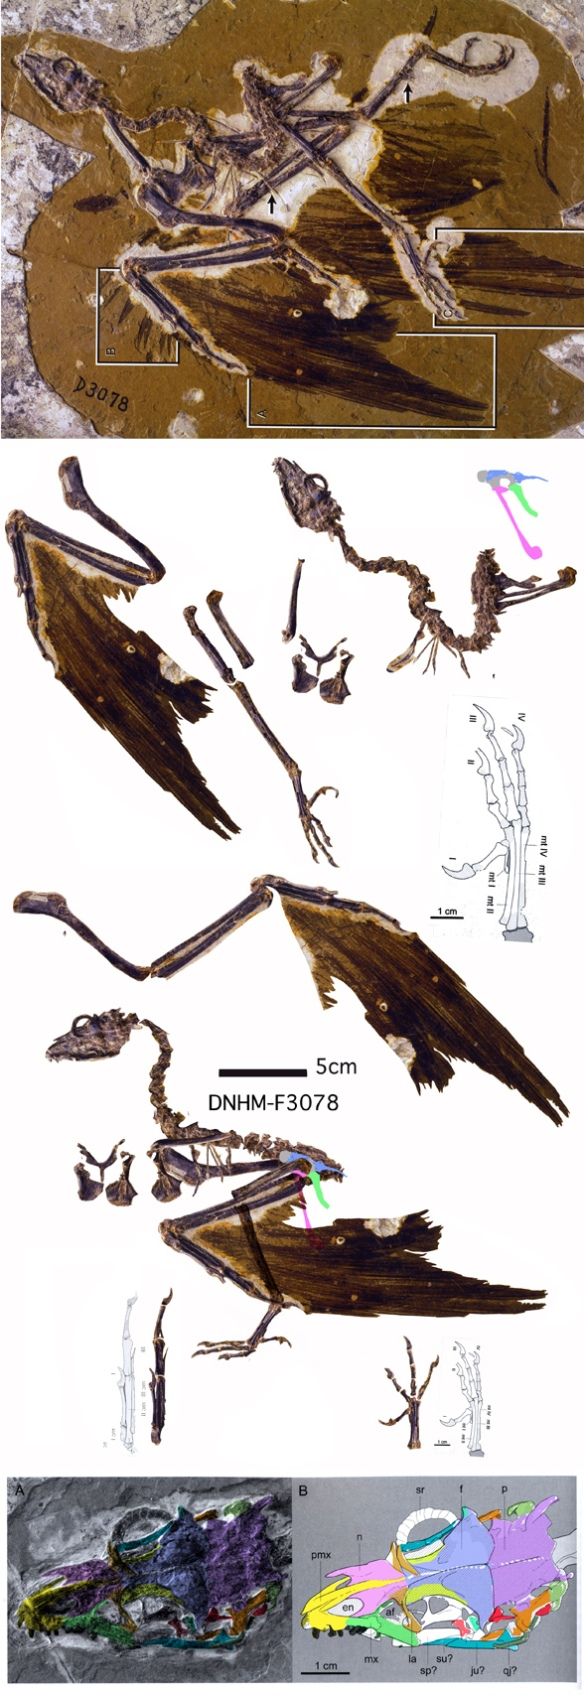 Figure 2. The DNHM specimen is wonderfully preserved. Note the incredible feathers! Here a little Photoshop digitally segregates the bones from each other and the matrix, then reassembles then in a lifelike pose.